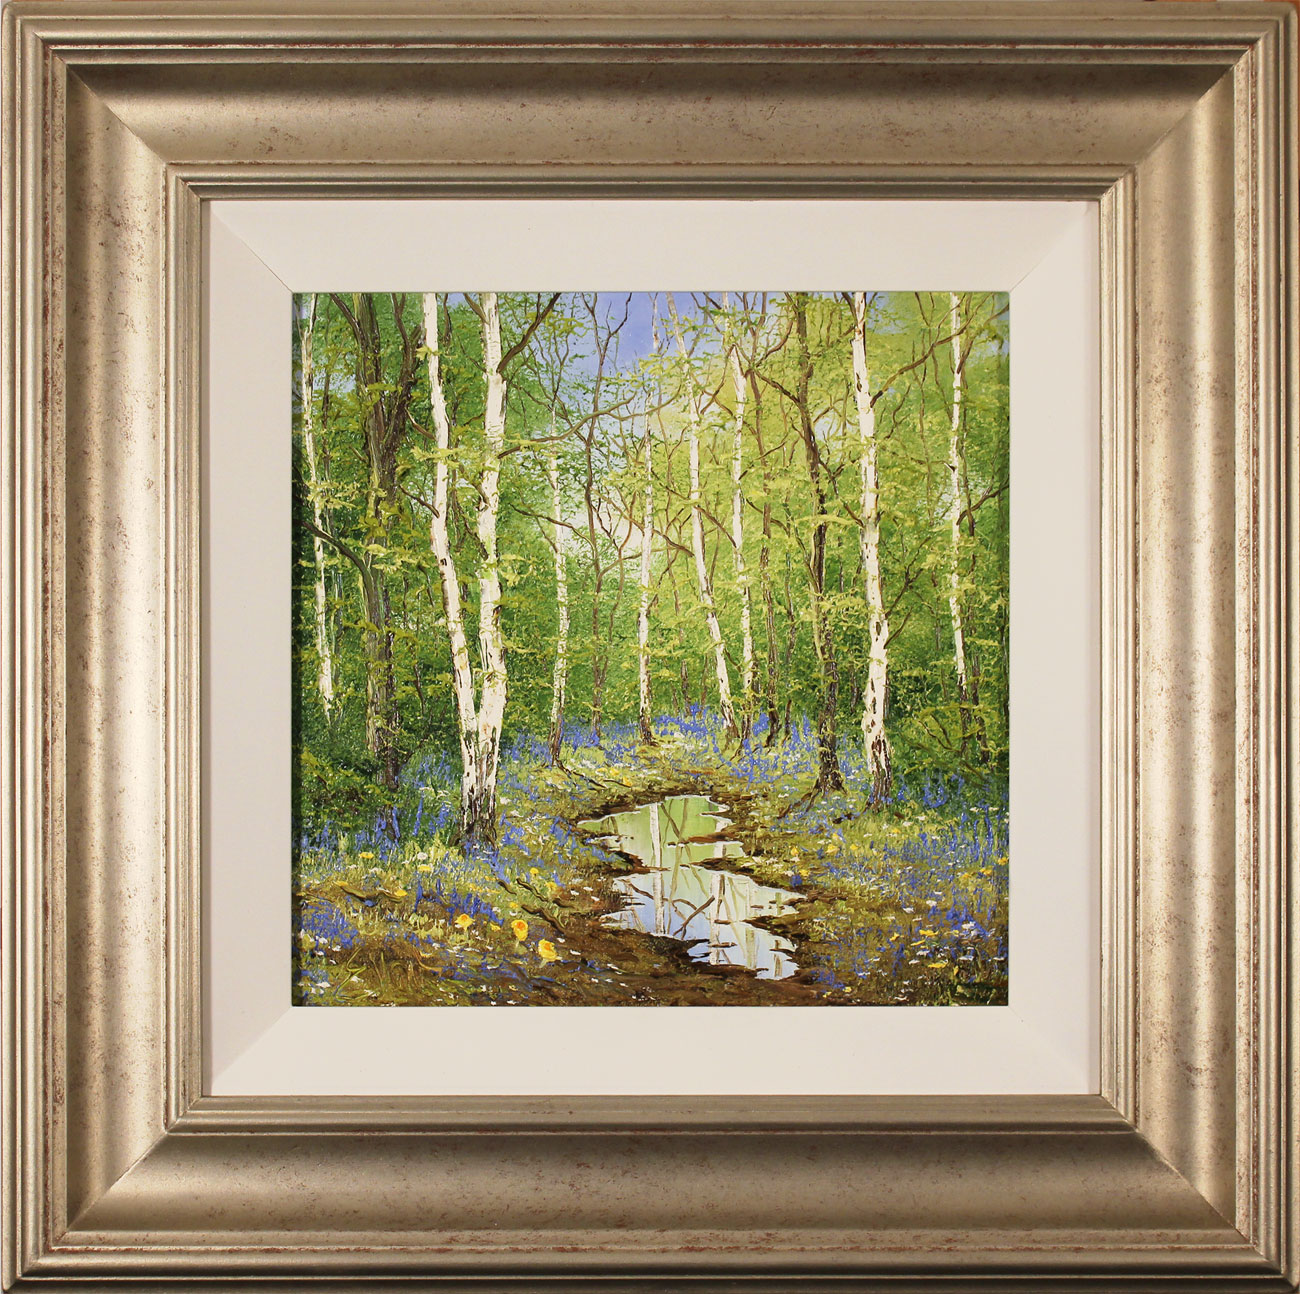 Terry Evans, Original oil painting on canvas, Forgotten Forest. Click to enlarge